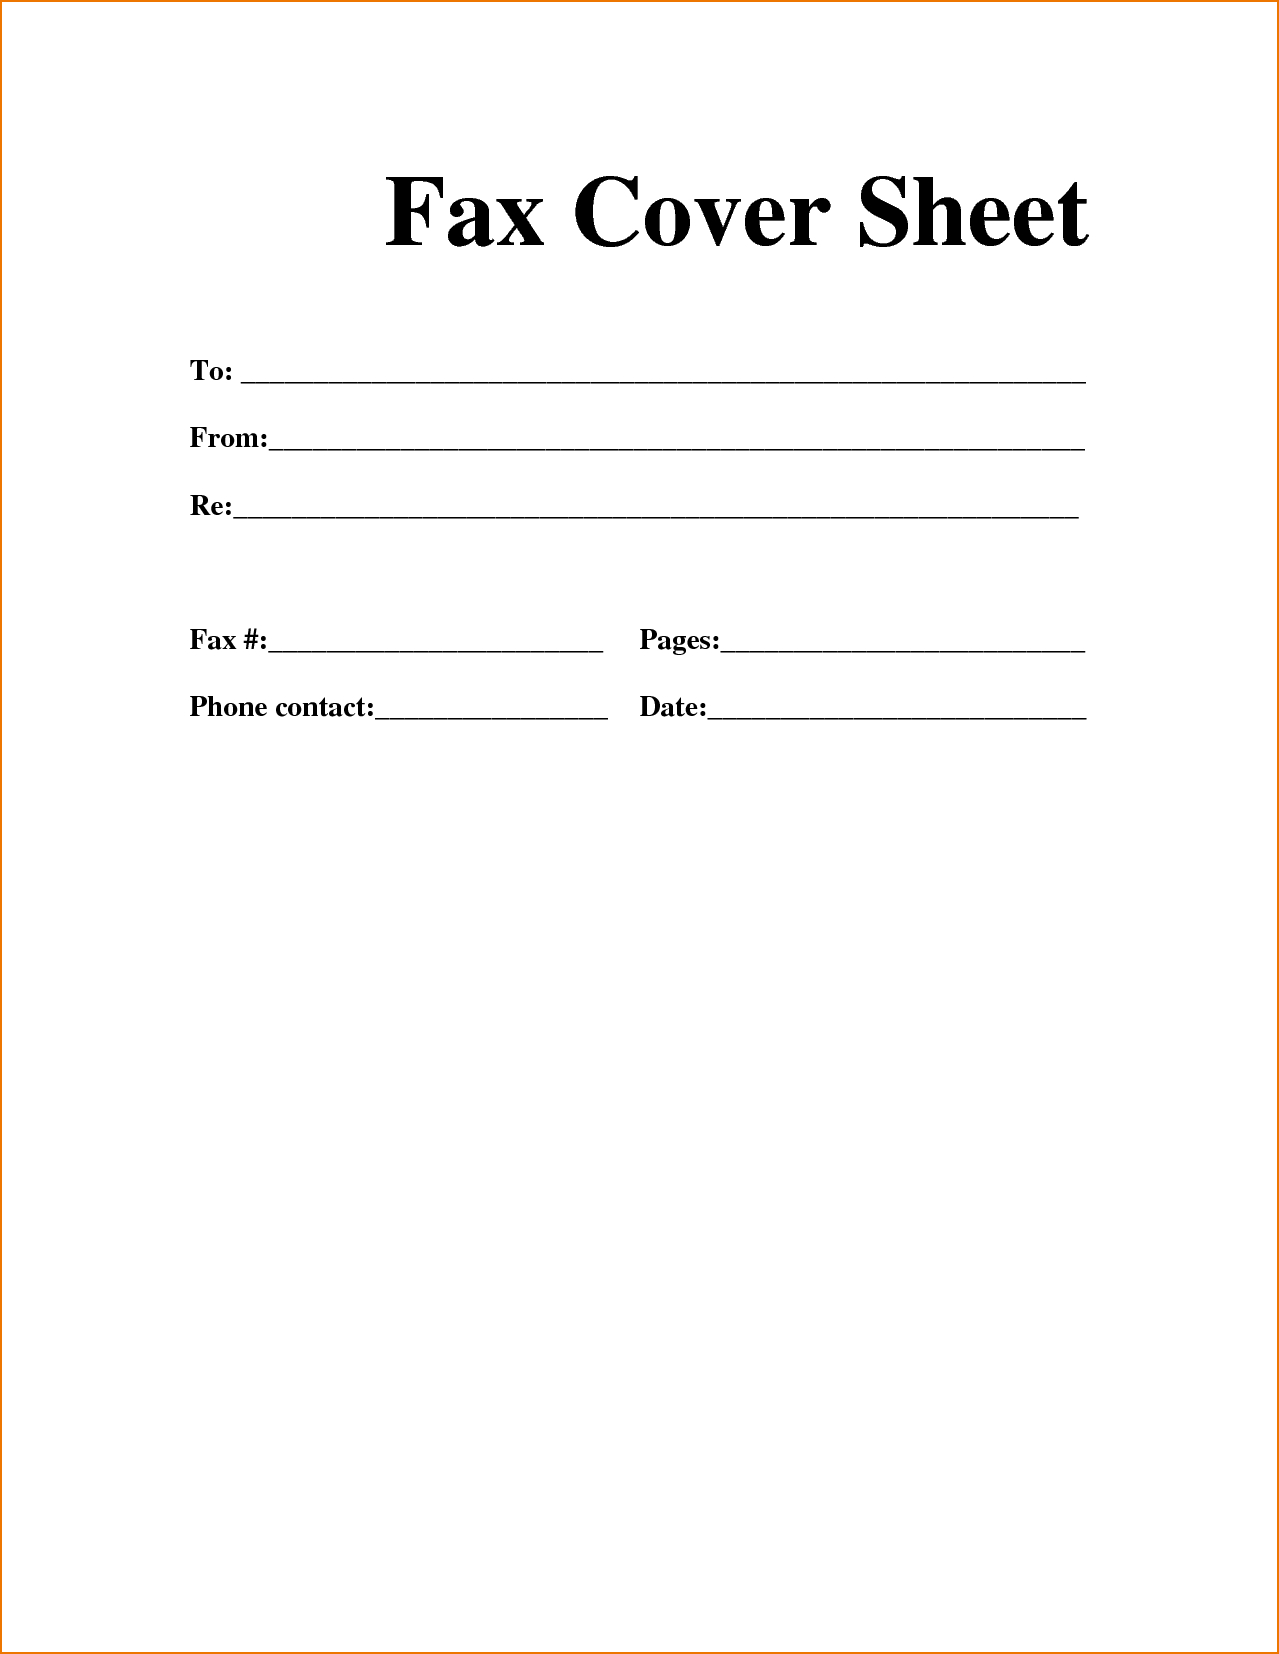 Sample Personal Fax Cover Sheet | Template In 2019 | Cover Sheet - Free Printable Fax Cover Sheet Pdf